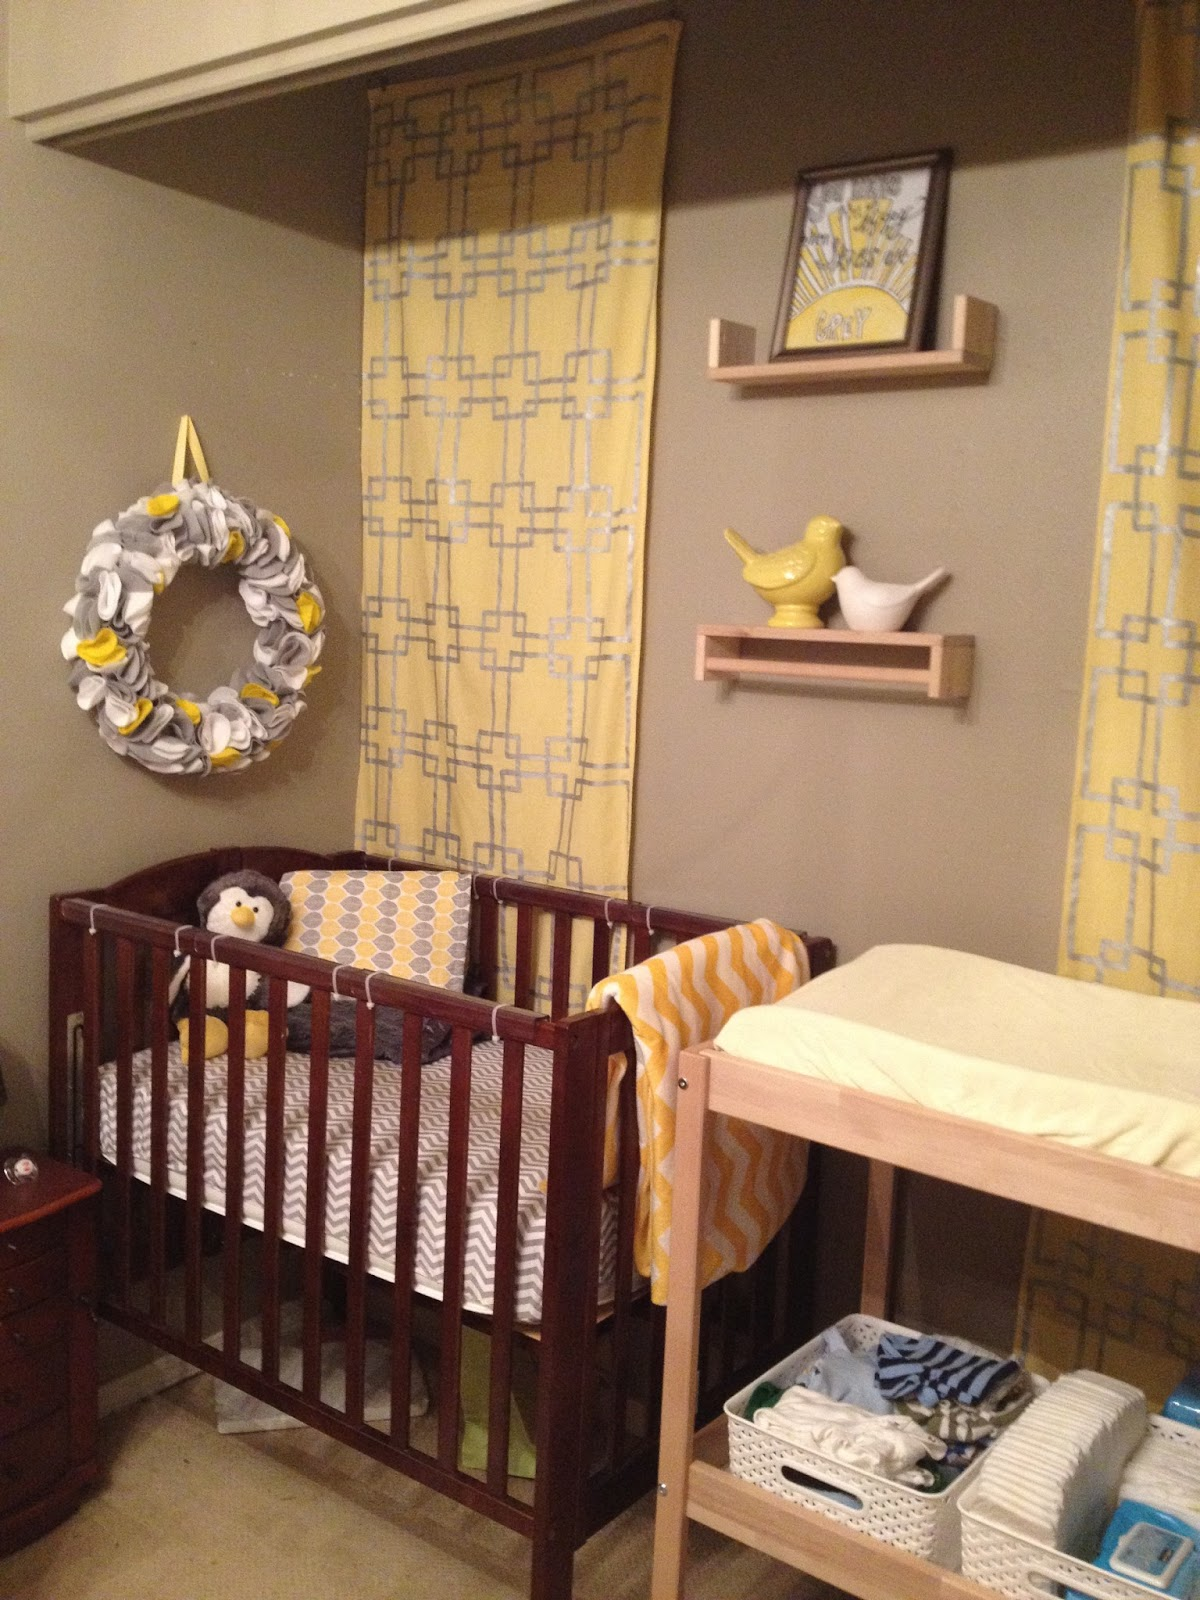 the closet nursery small spaces for growing your family u2013 thezmom at zinnia farmhouse